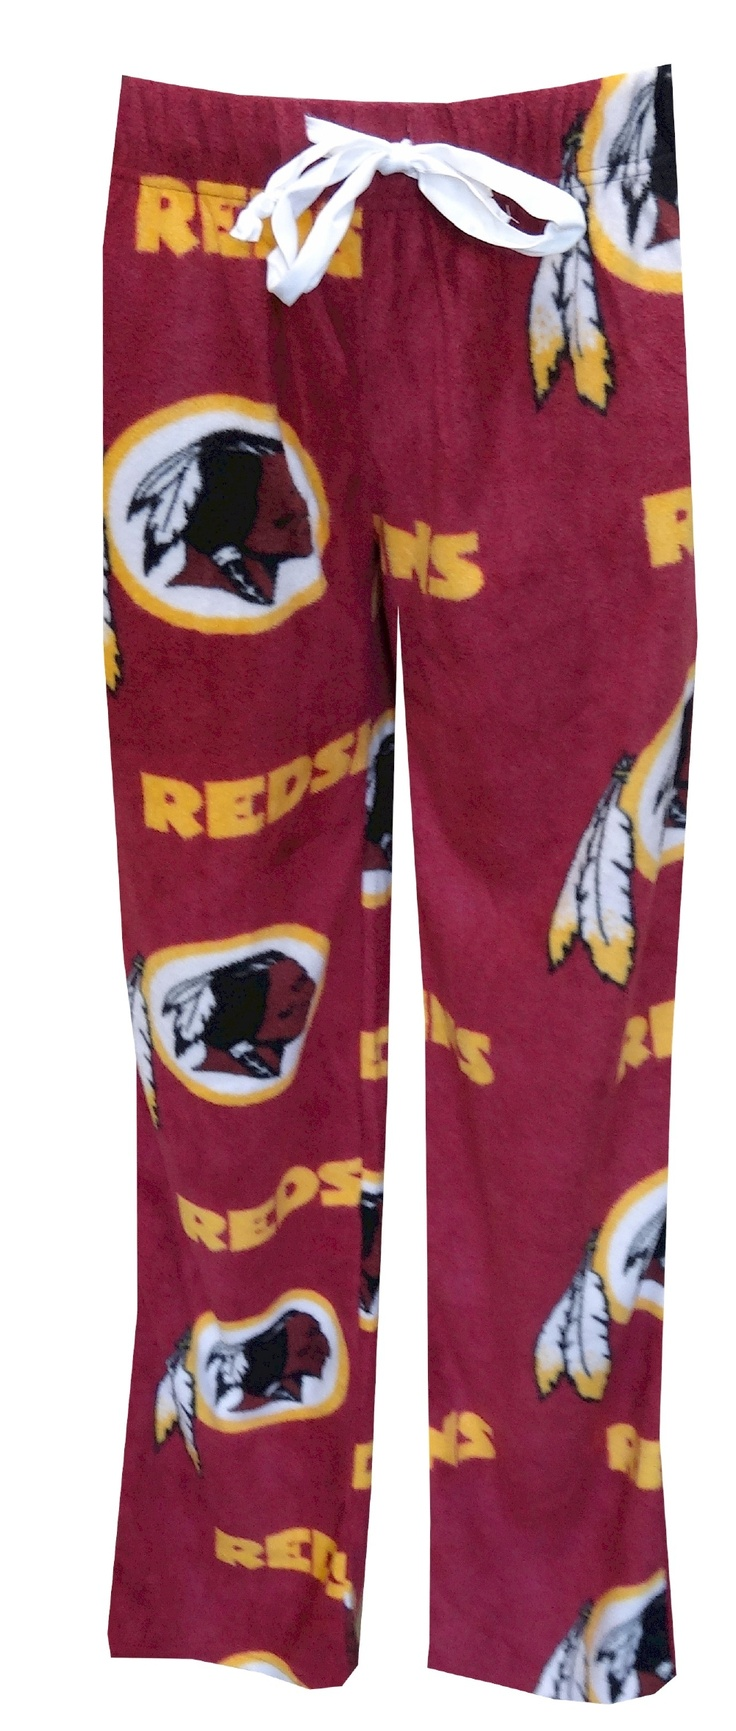 Washington Redskins Fleece Lounge Pants for Women, $25  Hail to the Redskins! If you hum that tune in your sleep, you must be a true fan! Show your team spirit with these cozy fleece lounge pants for women. They are covered with the Washington Redskins lo